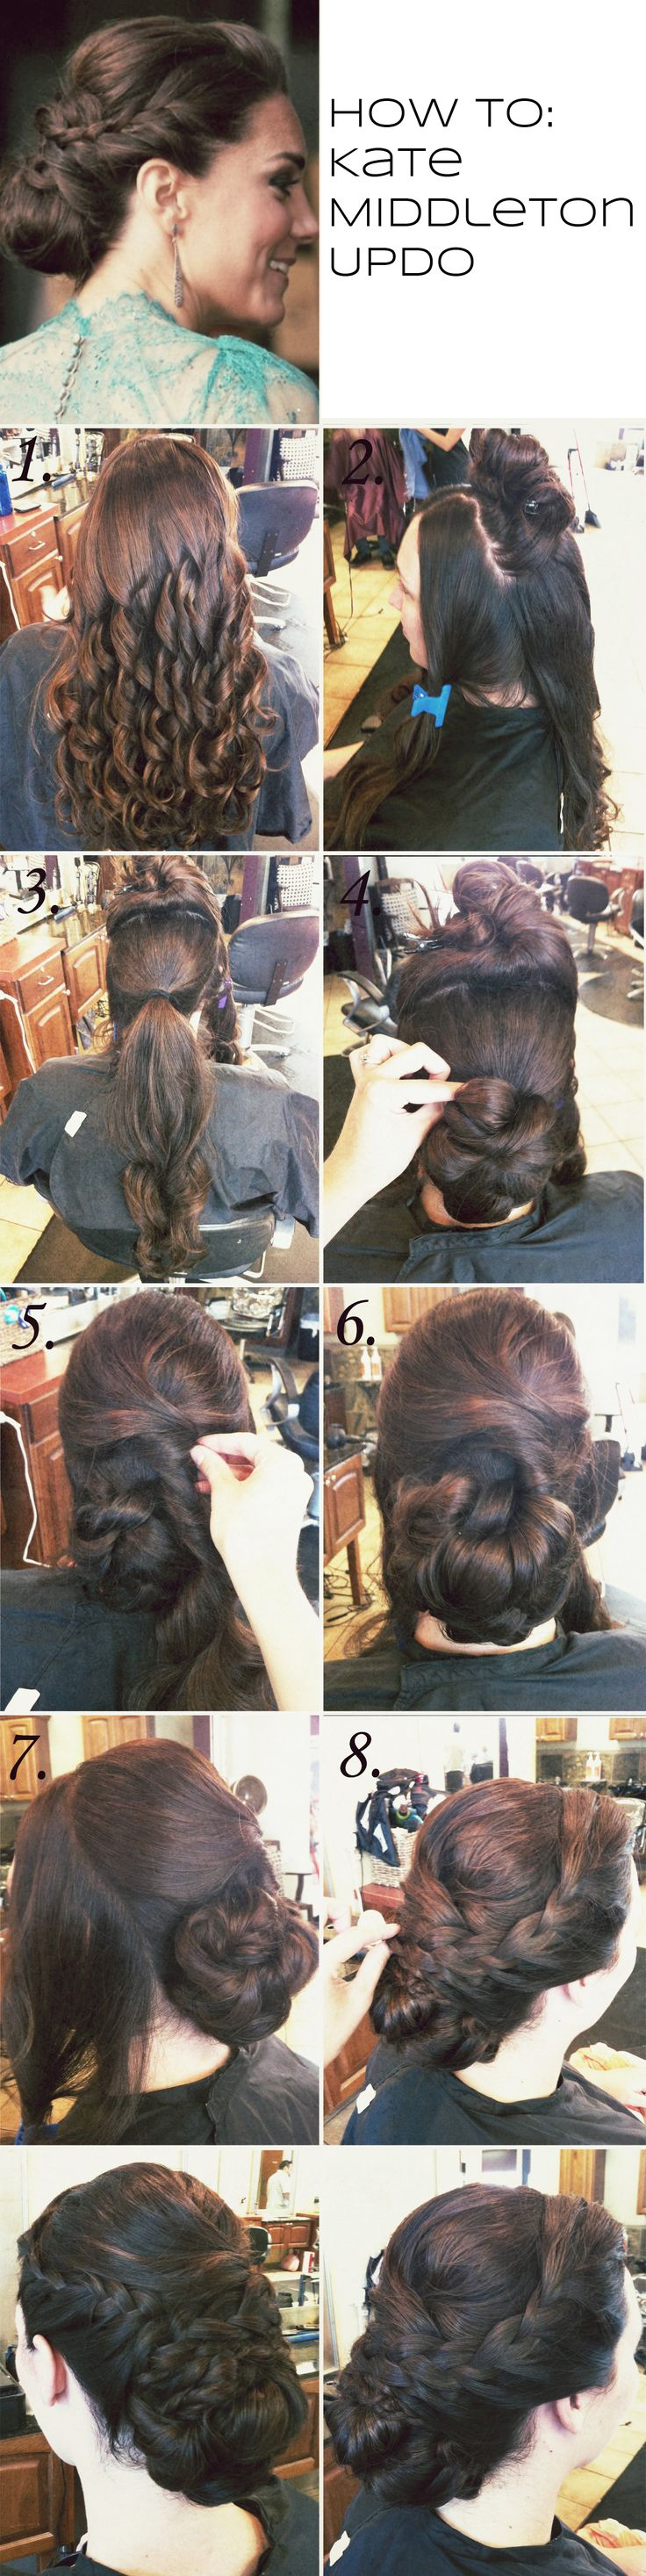 visit blog.hairandmakeupbysteph.com to learn how to do Kate Middleton's updo